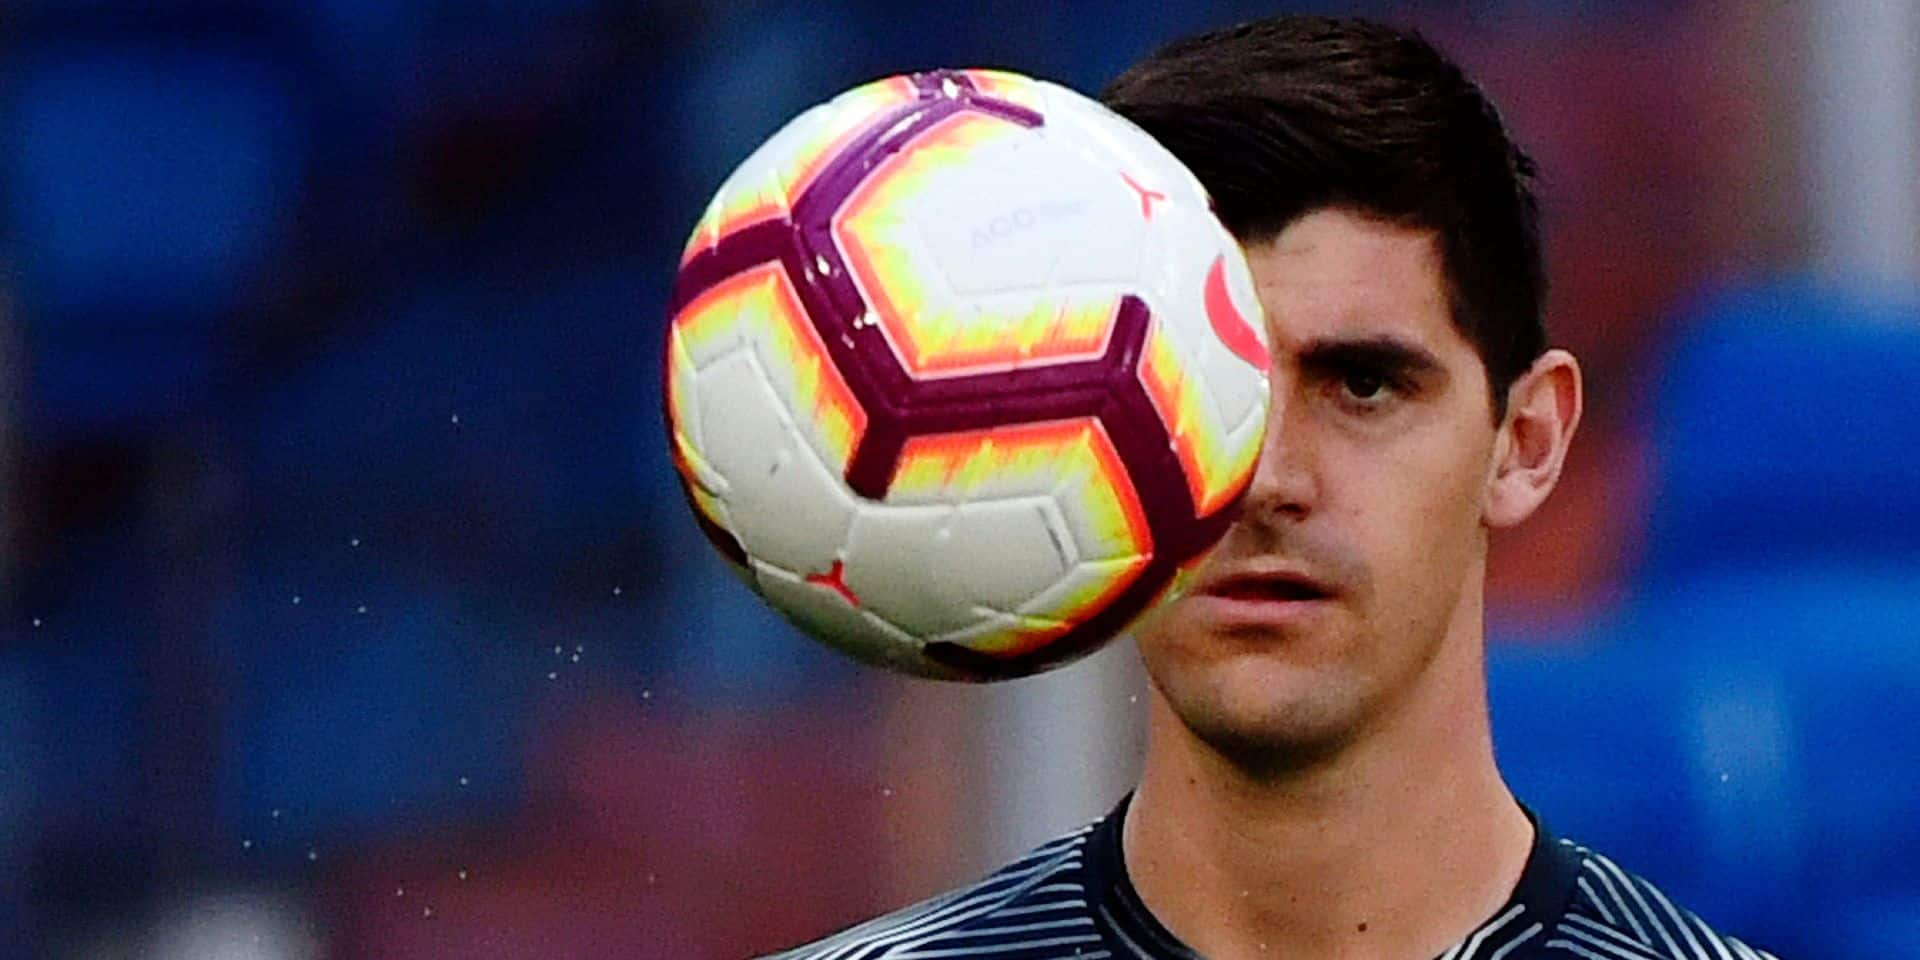 Real Madrid's Belgian goalkeeper Thibaut Courtois eyes the ball as he warms up before the Spanish league football match between Real Madrid CF and RC Celta de Vigo at the Santiago Bernabeu stadium in Madrid on March 16, 2019. (Photo by GABRIEL BOUYS / AFP)